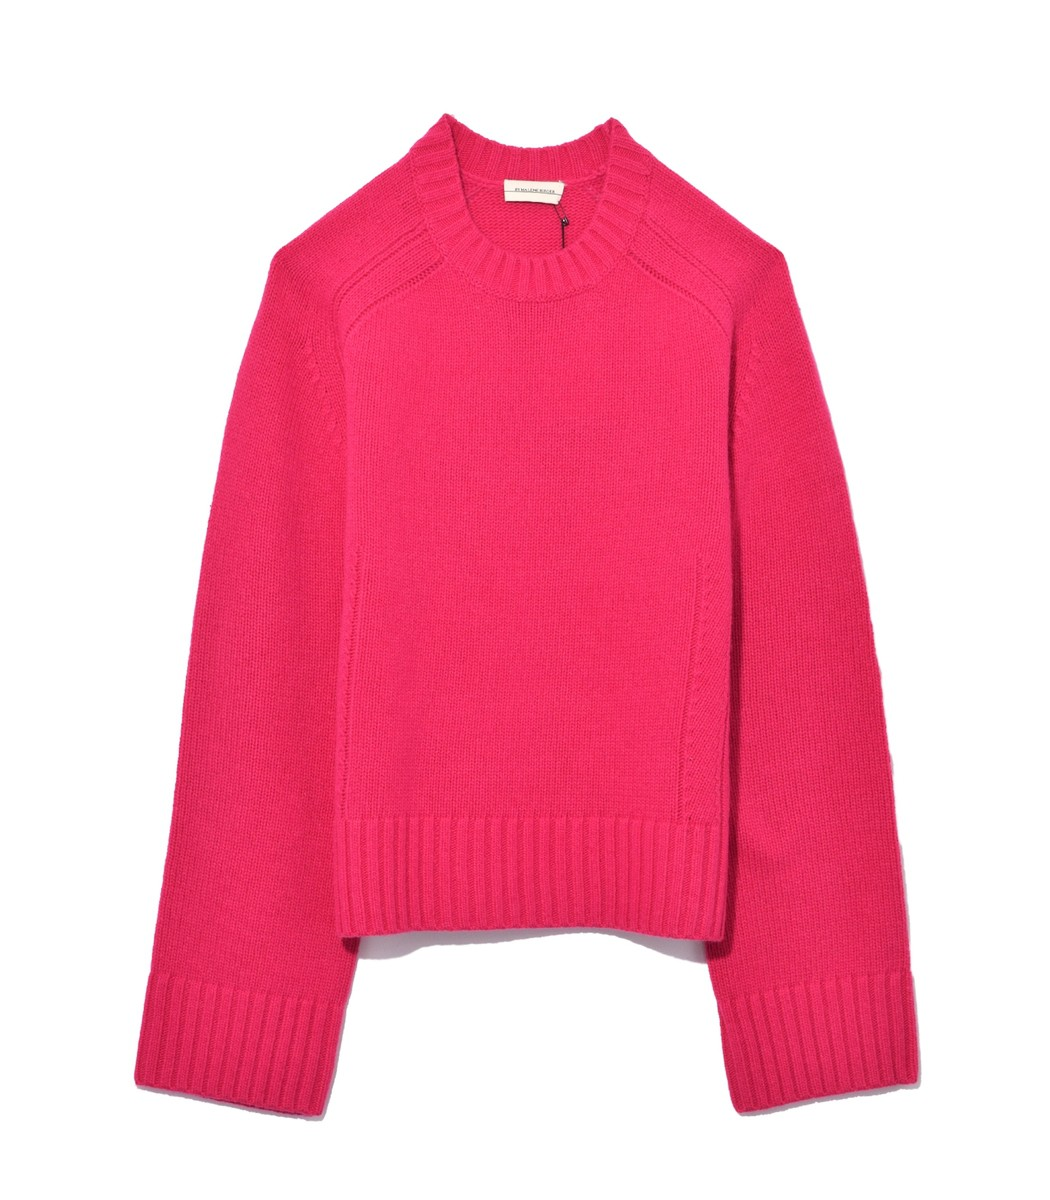 BY MALENE BIRGER Clear Pink Sullie Sweater